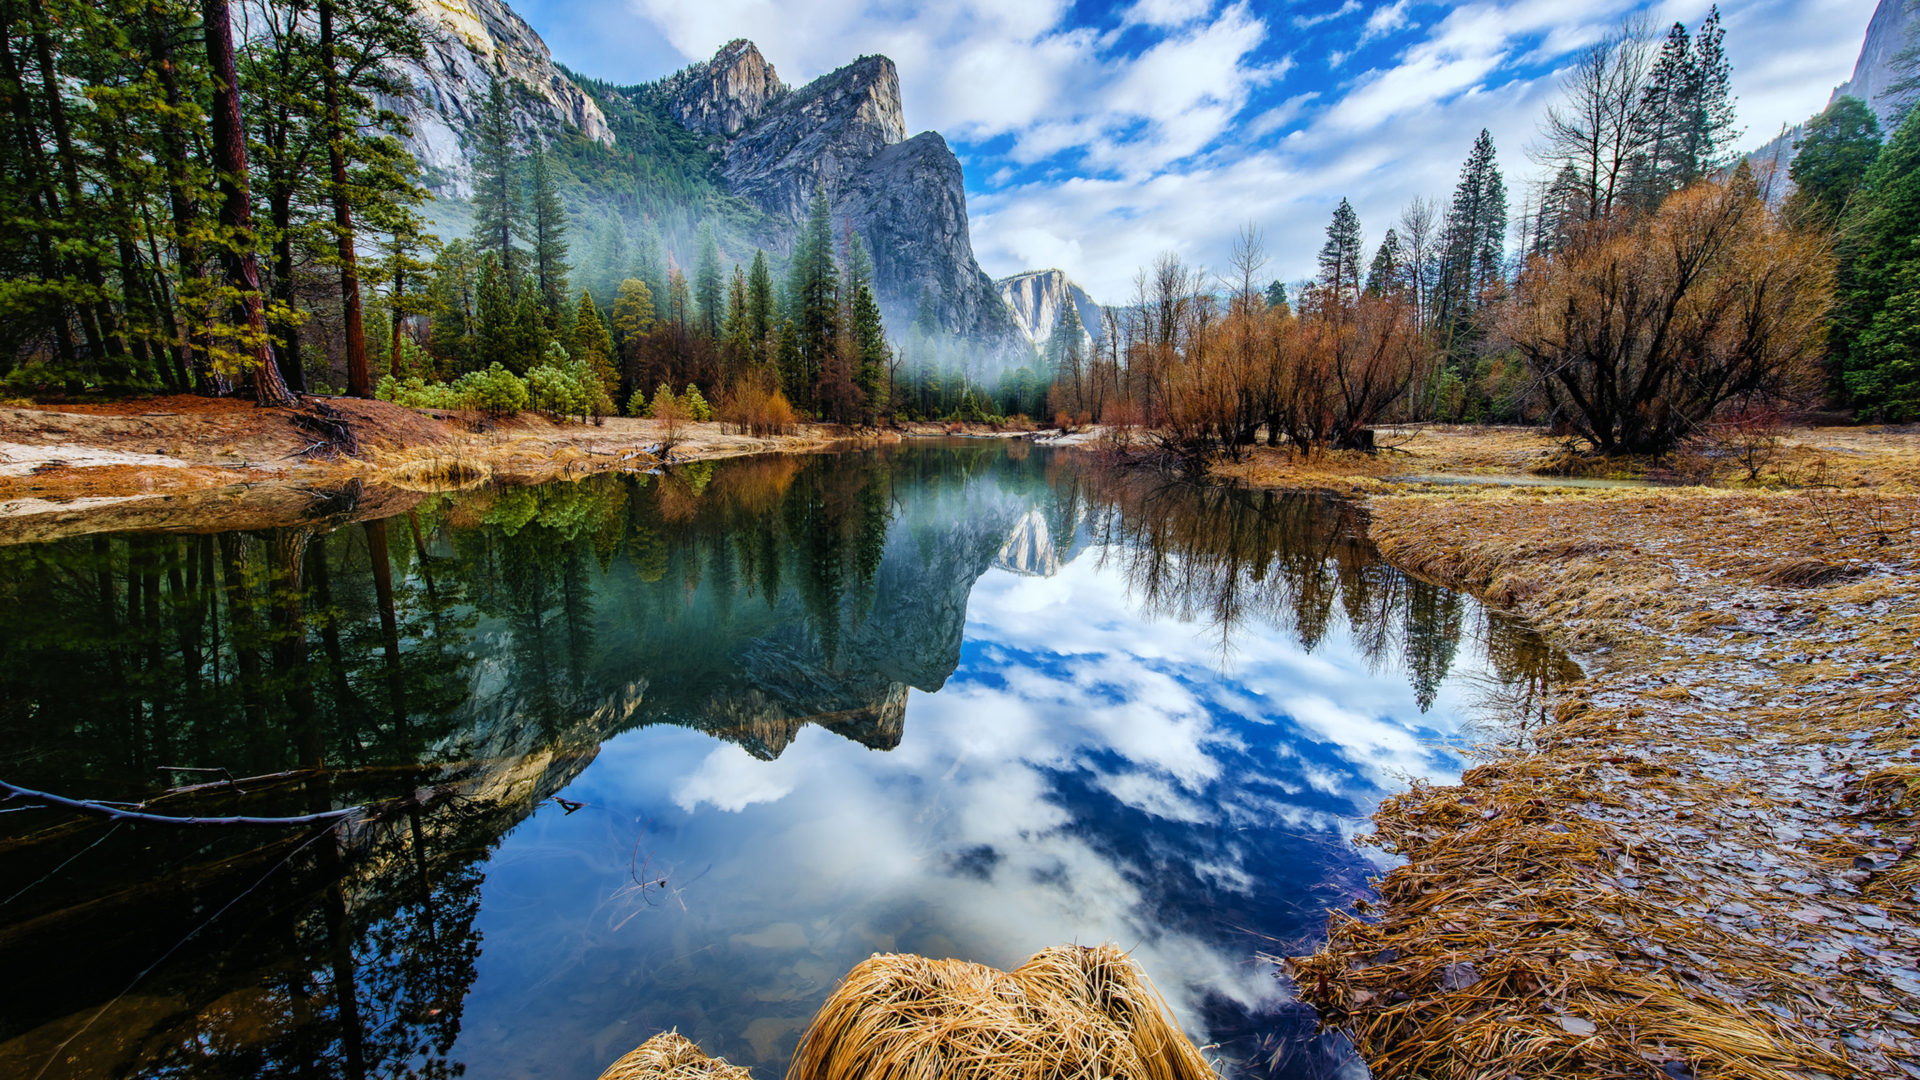 Fall Wallpaper Free Iphone Three Brothers Mountains Is A Mountain In Wyoming And Is